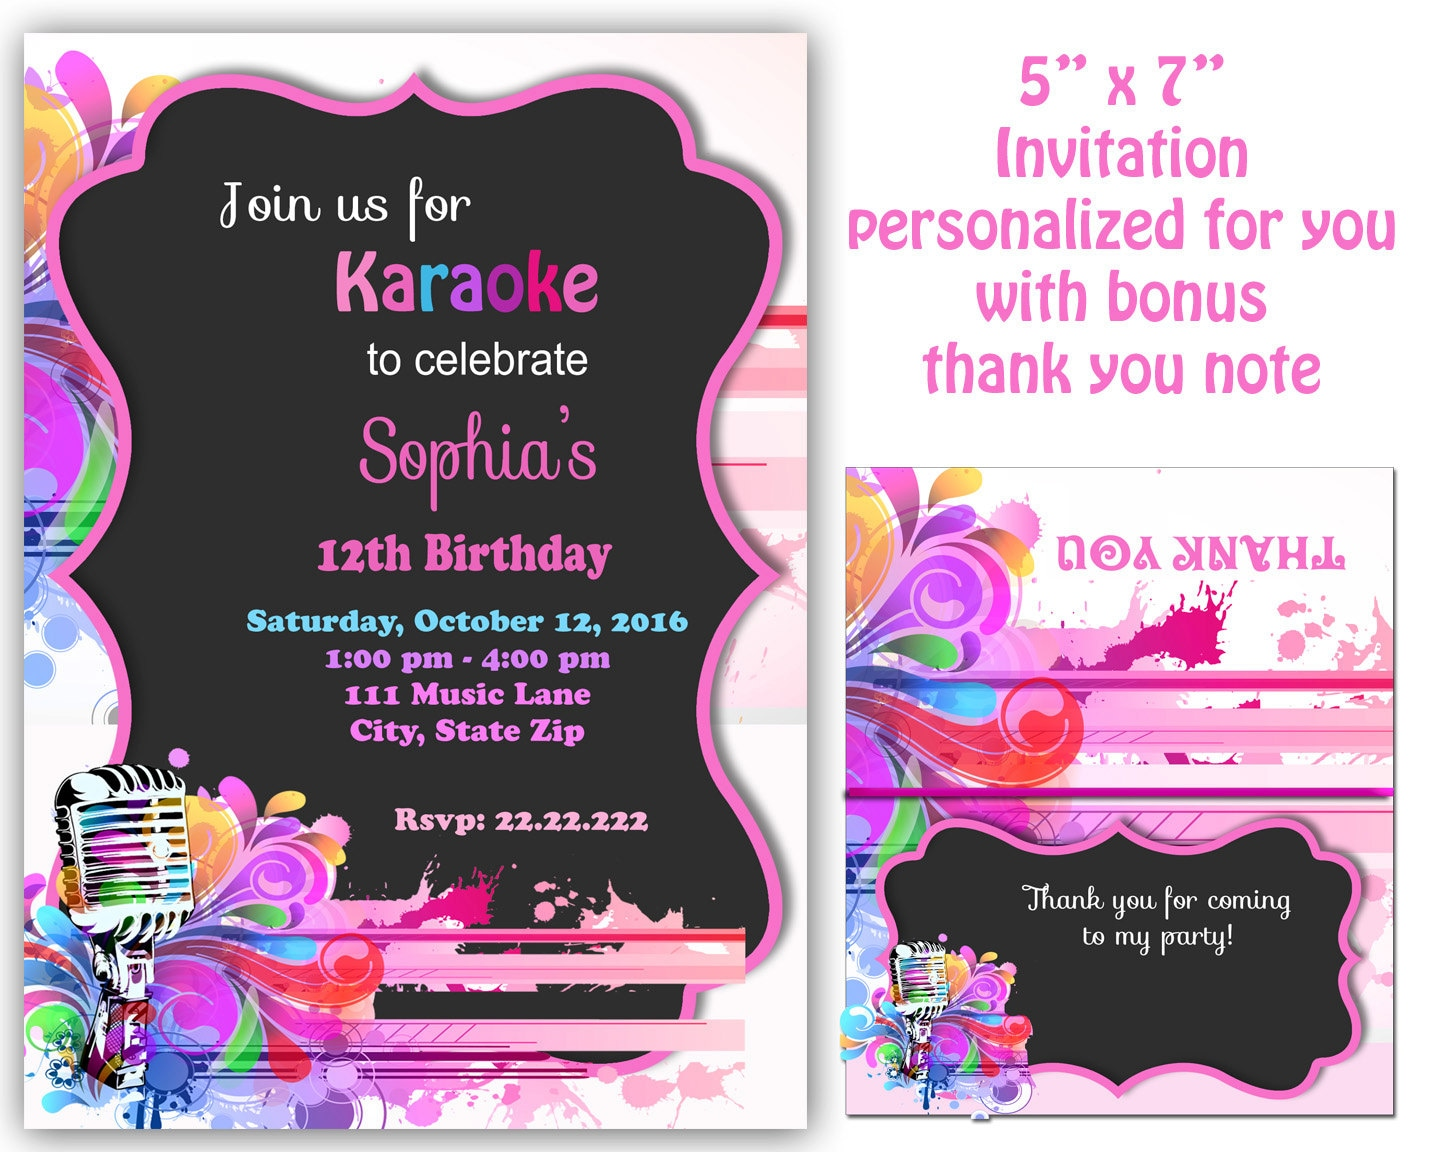 Karaoke invitation Karaoke Party Invitation Karaoke